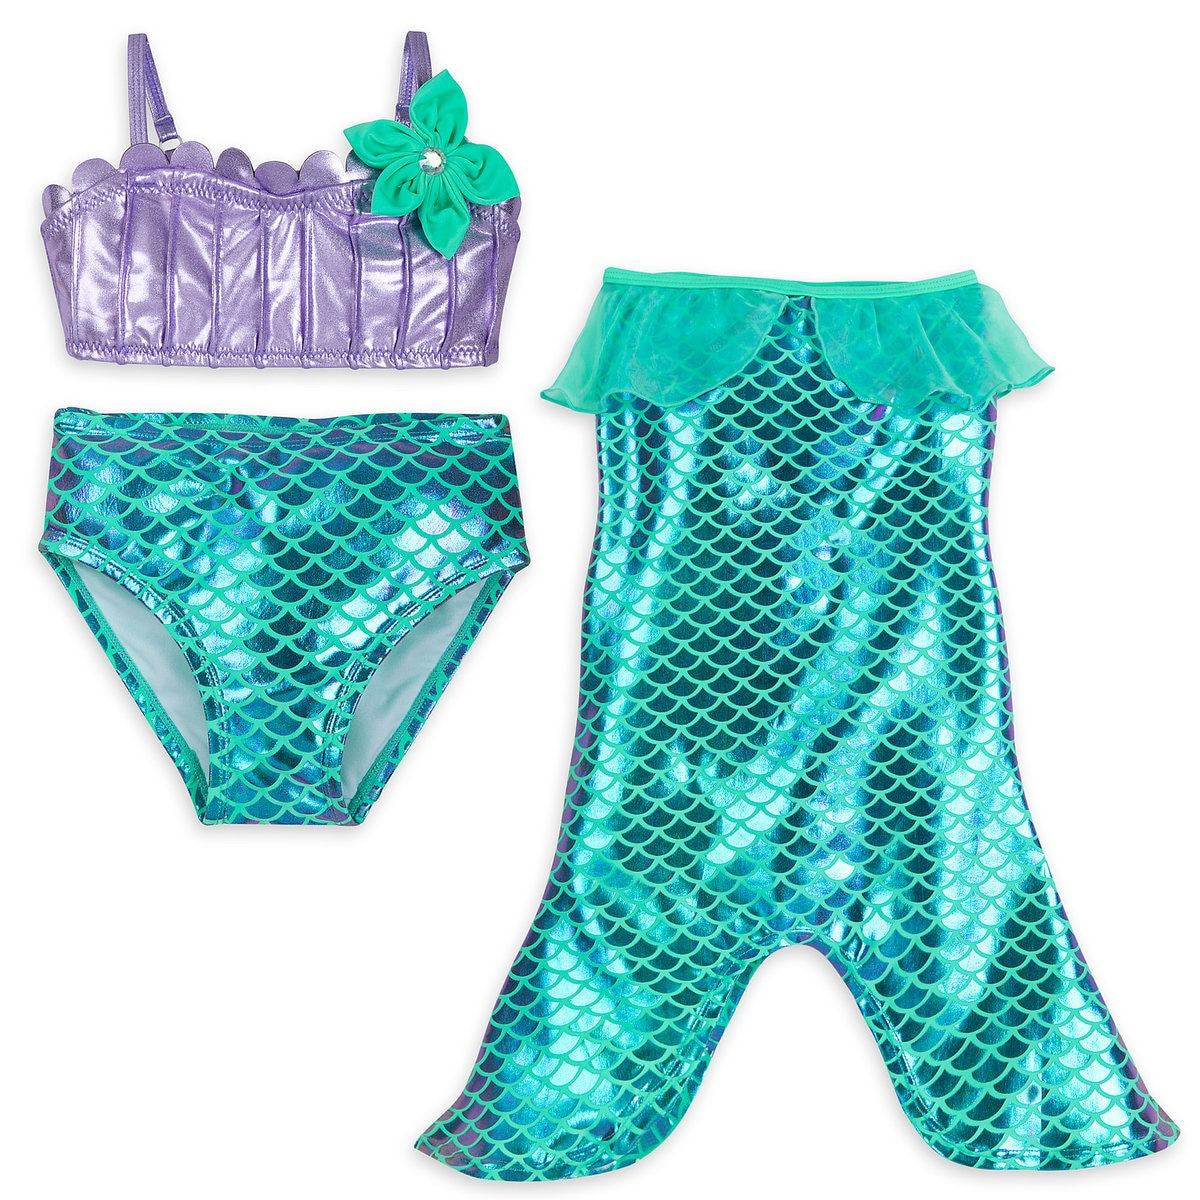 270695a35d29d Product Image of Ariel Swimwear Set for Girls # 1